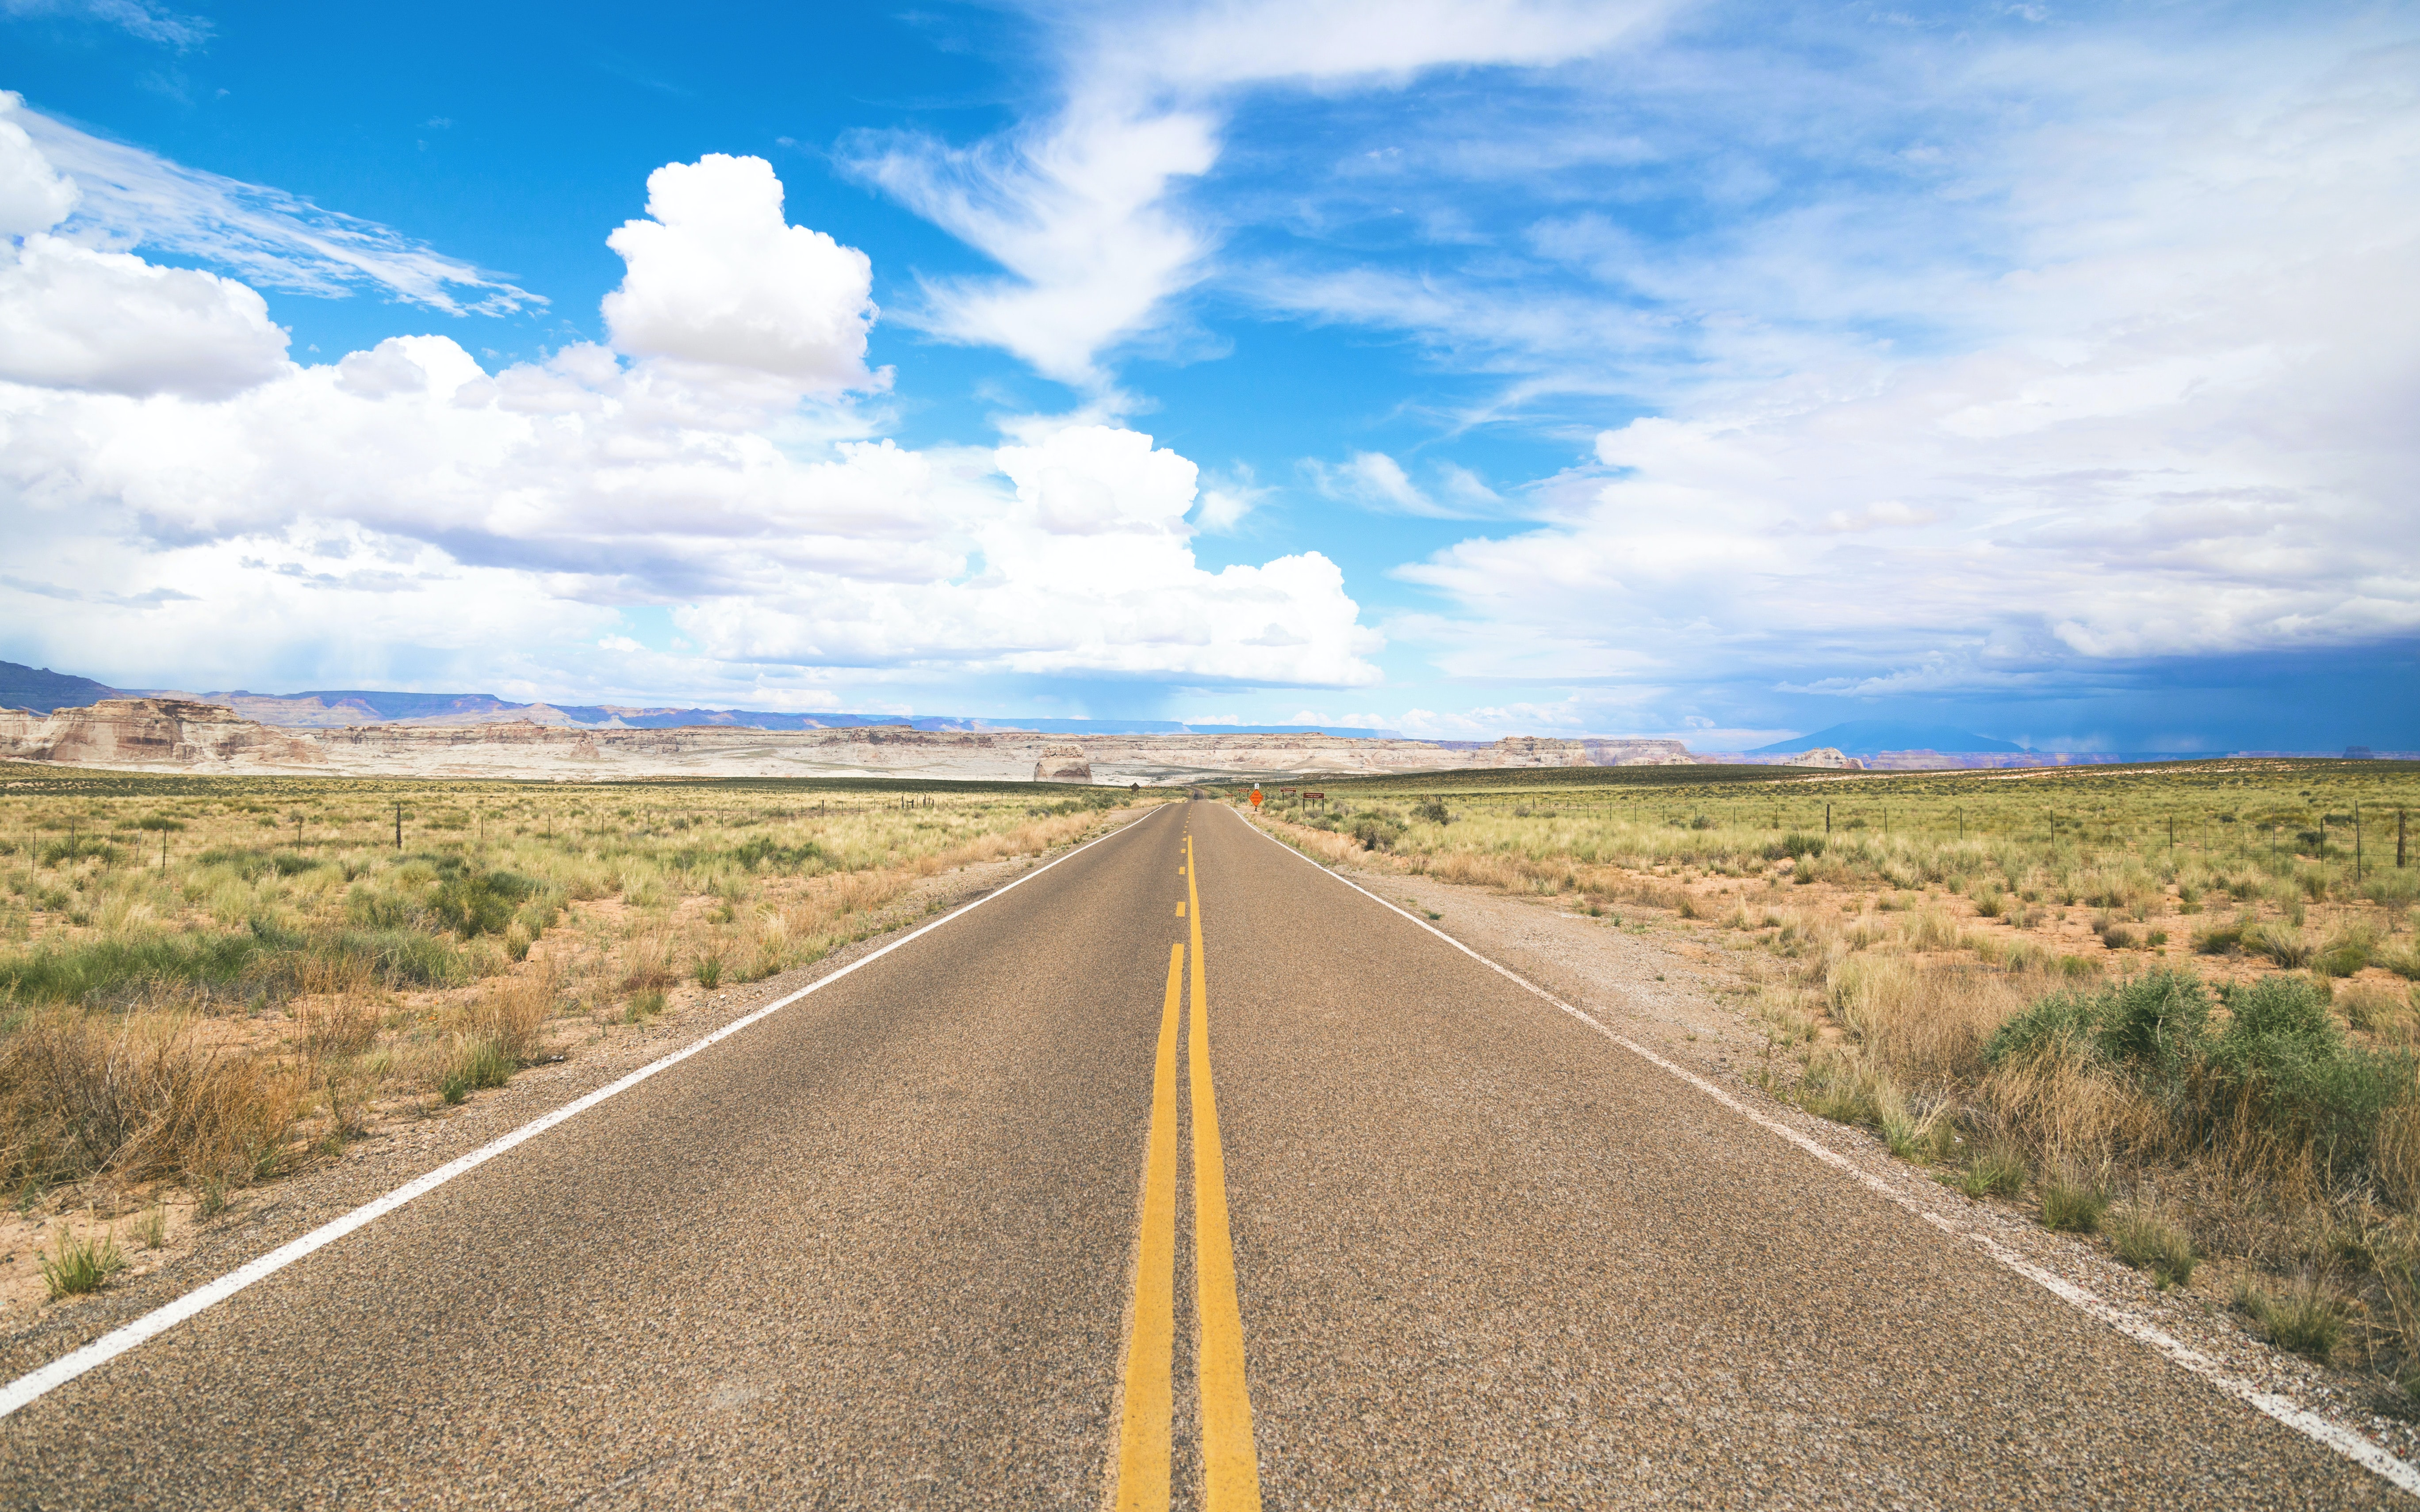 A rural highway surrounded by a desert and meadow with a blue sky filled with fluffy clouds